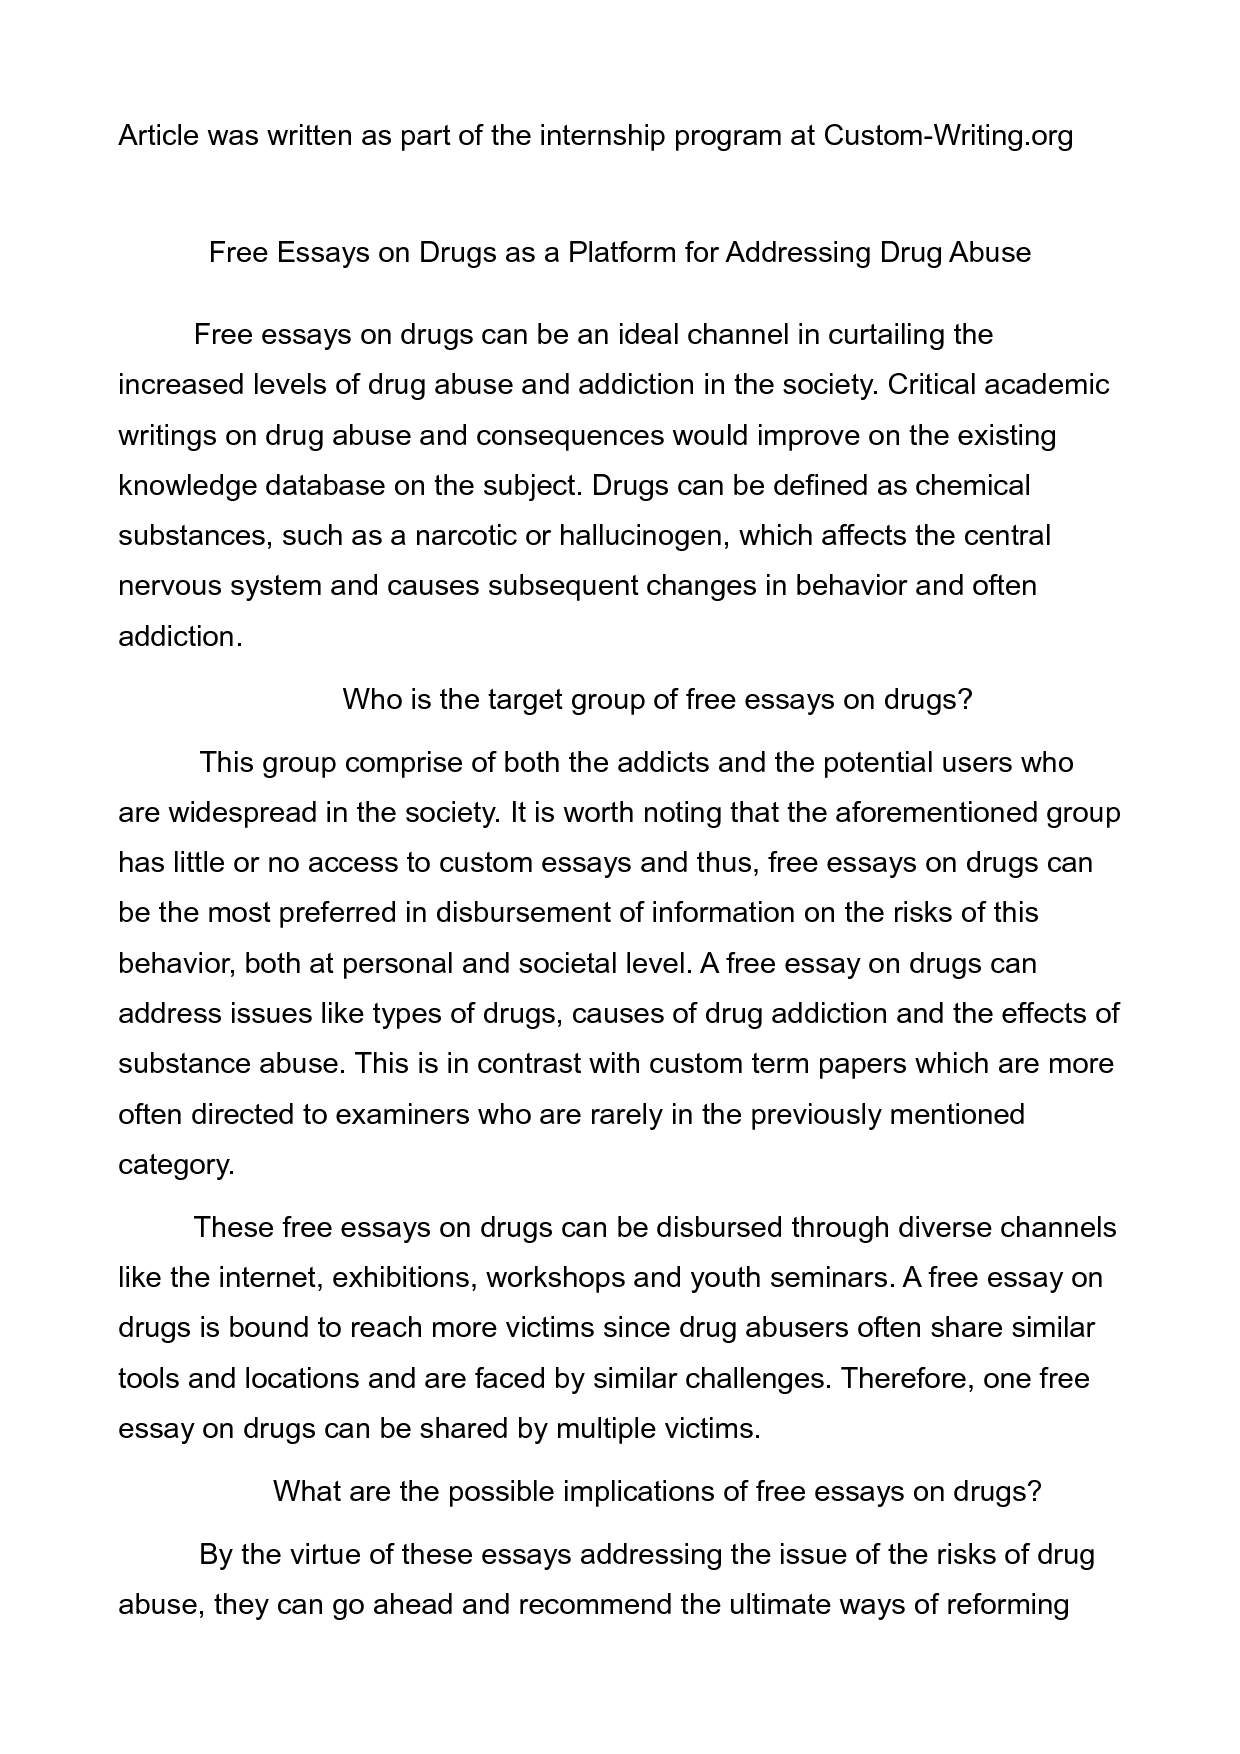 009 Argumentative Essay About Drugs Amazing Template Sample 6th Grade Conclusion Full